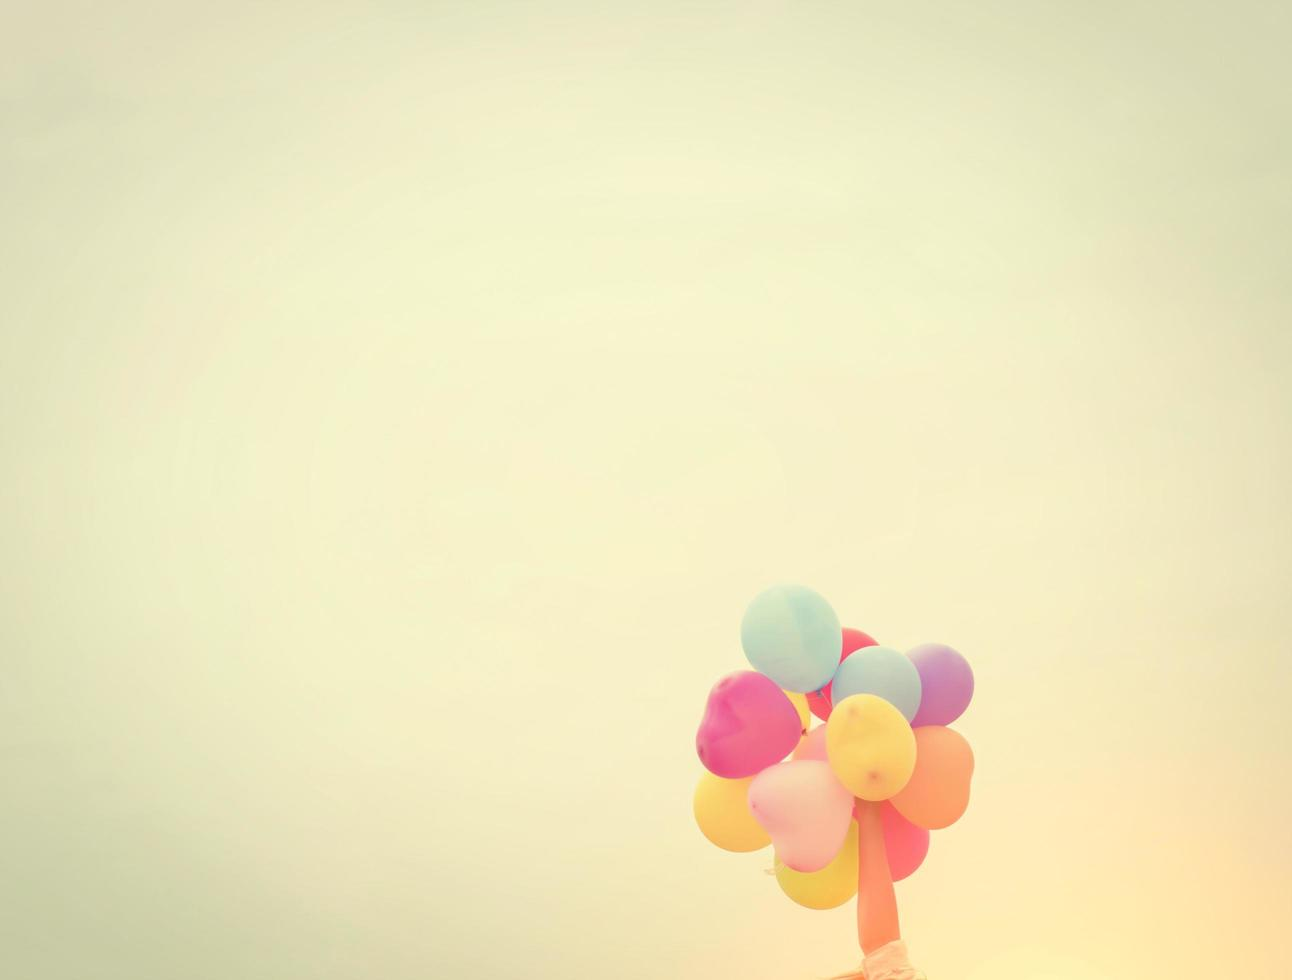 Hands holding colorful balloons in the sunshine of summer photo